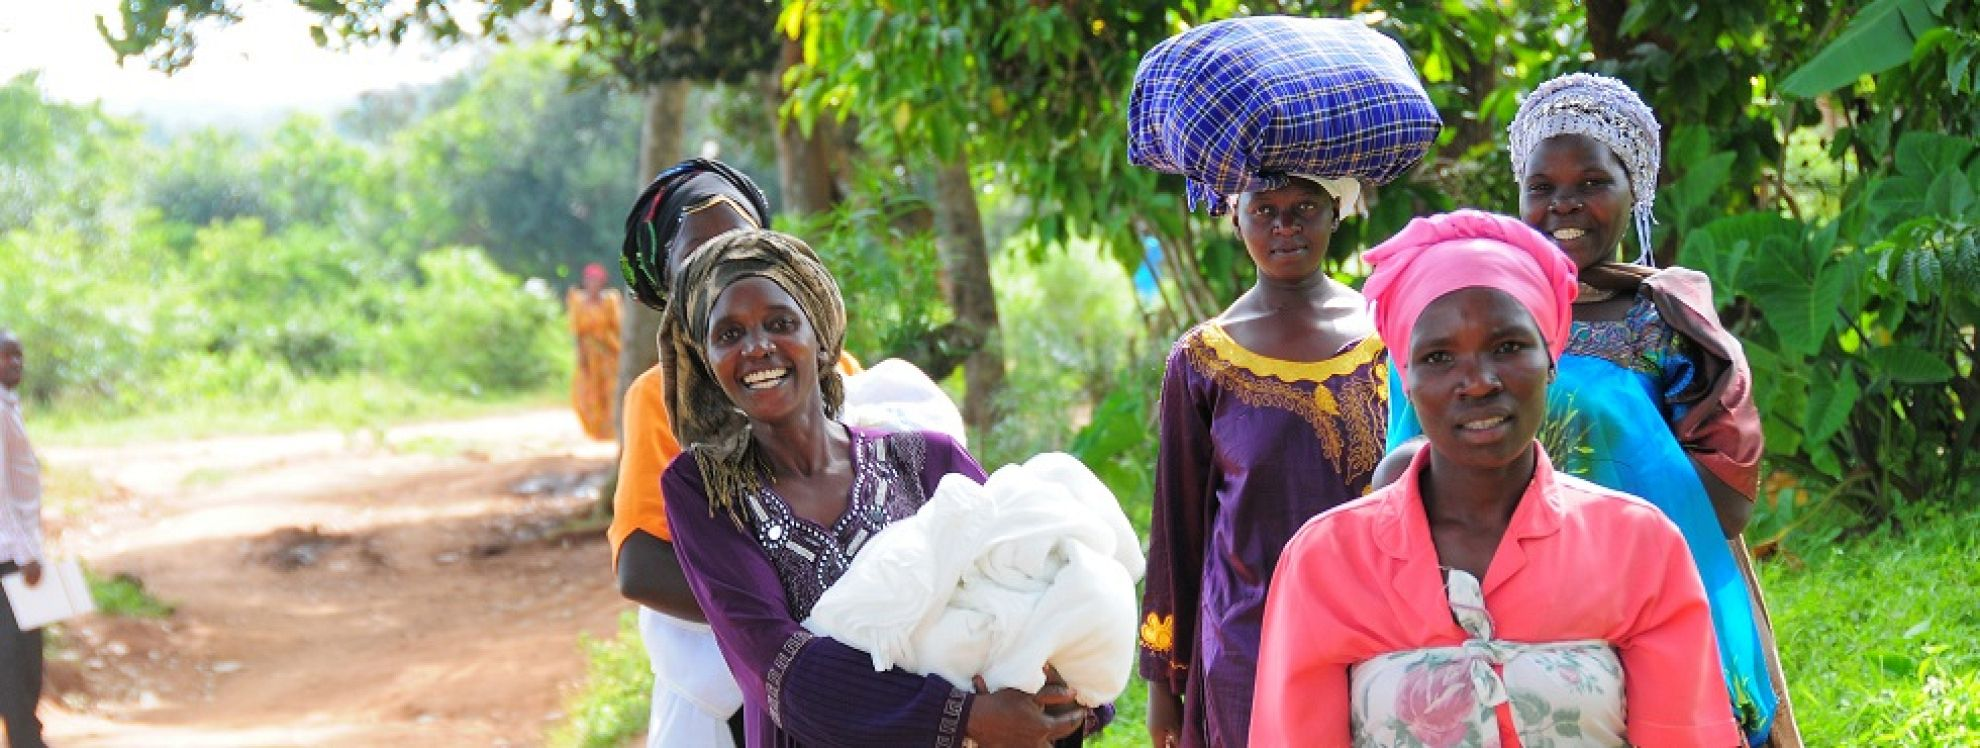 Latest News Historic campaign delivers mosquito nets to every household across uganda